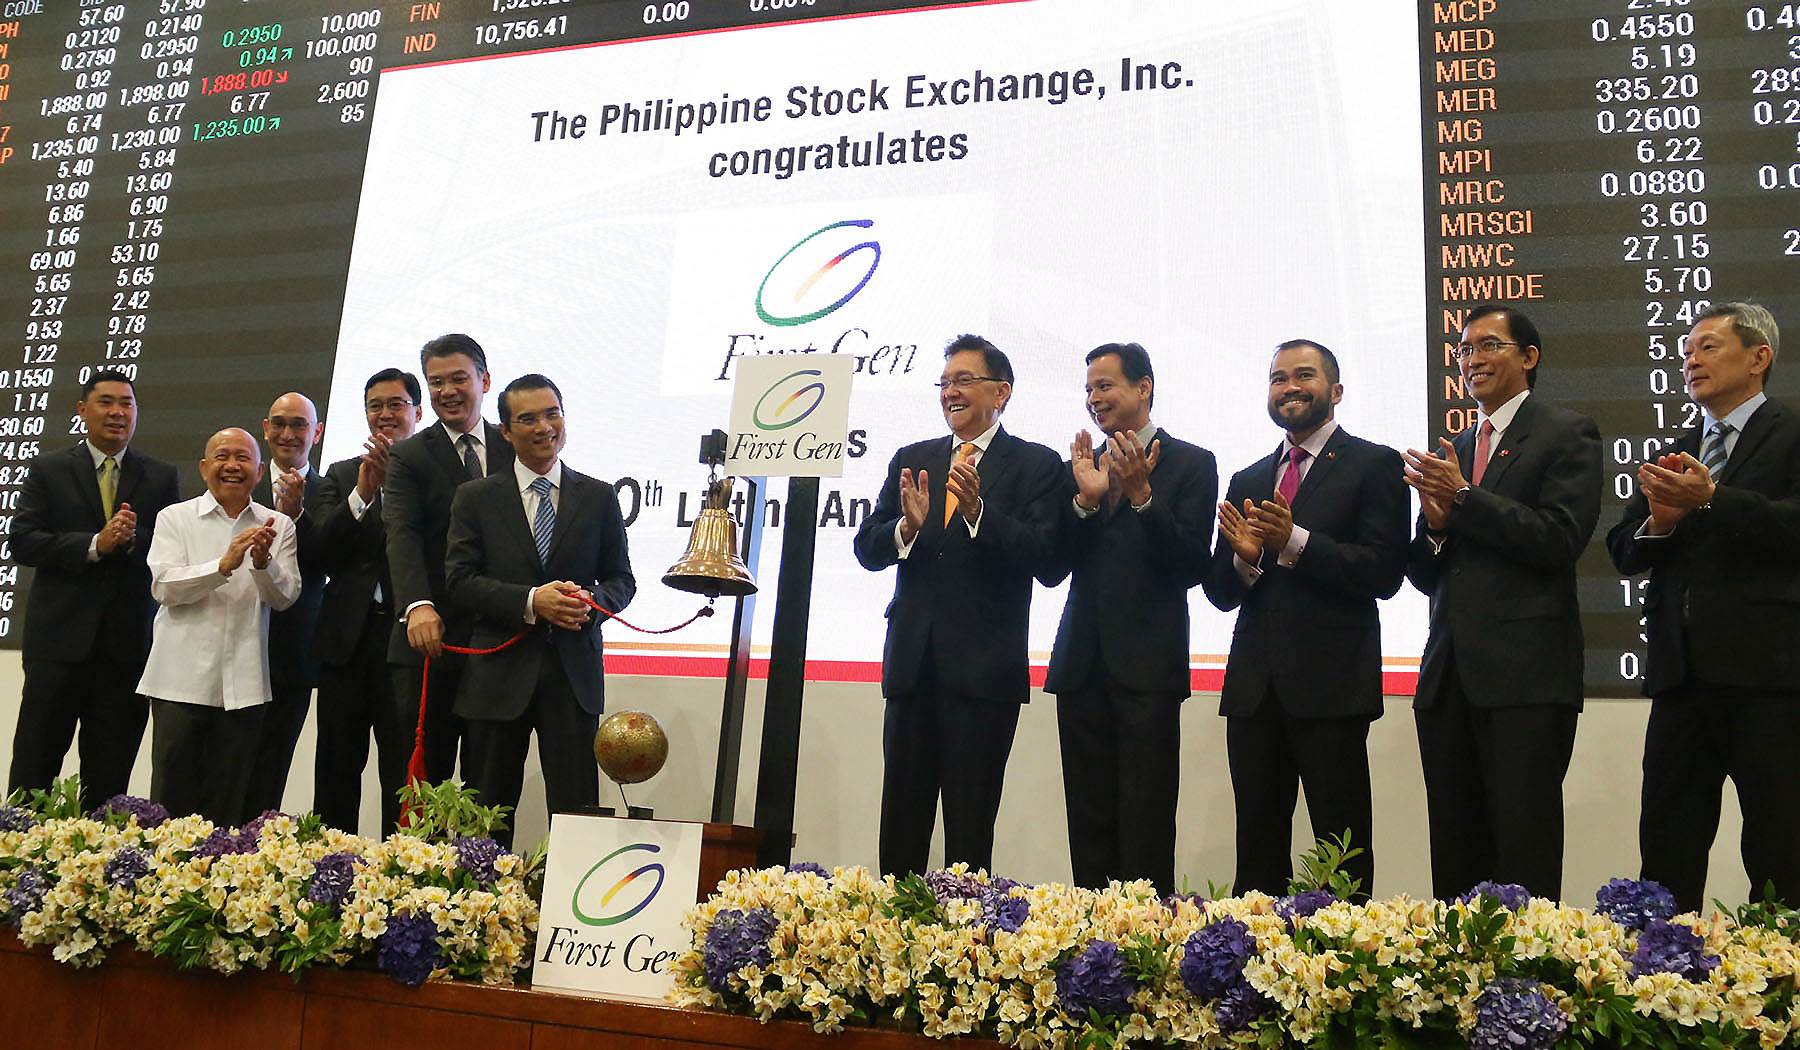 First Gen chairman and chief executive officer Federico R. Lopez (center) with (l-r) senior vice president and compliance officer Victor Emmanuel Santos Jr., director Elpidio Ibañez, senior vice president and chief financial officer and treasurer Emmanuel Singson, executive vice president and director Richard Tantoco, president and chief operating officer Francis Giles Puno, PSE chairman Jose Pardo, director Emmanuel Bautista, chief operating officer Roel Refran, president and chief executive officer Hans Sicat and director Alejandro Yu.